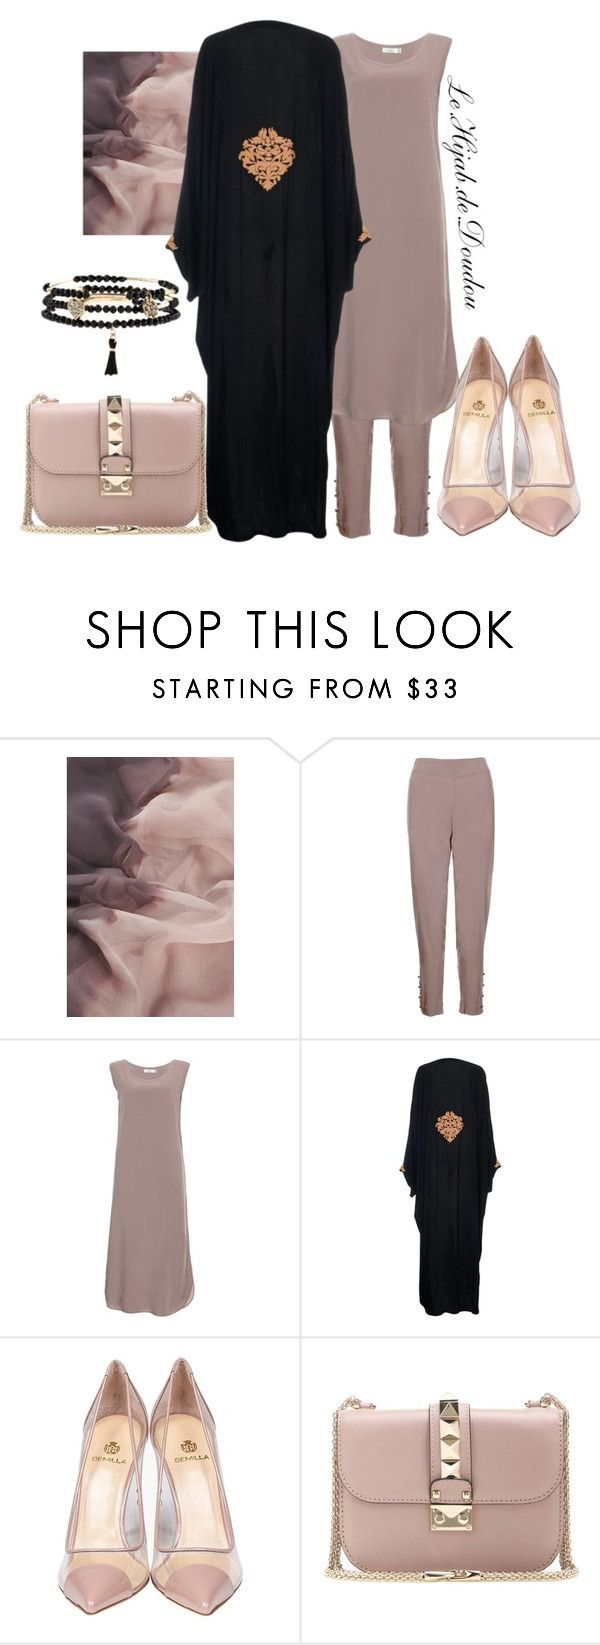 """Eid outfit"" by le-hijab-de-doudou ❤ liked on Polyvore featuring Semilla and Valentino"